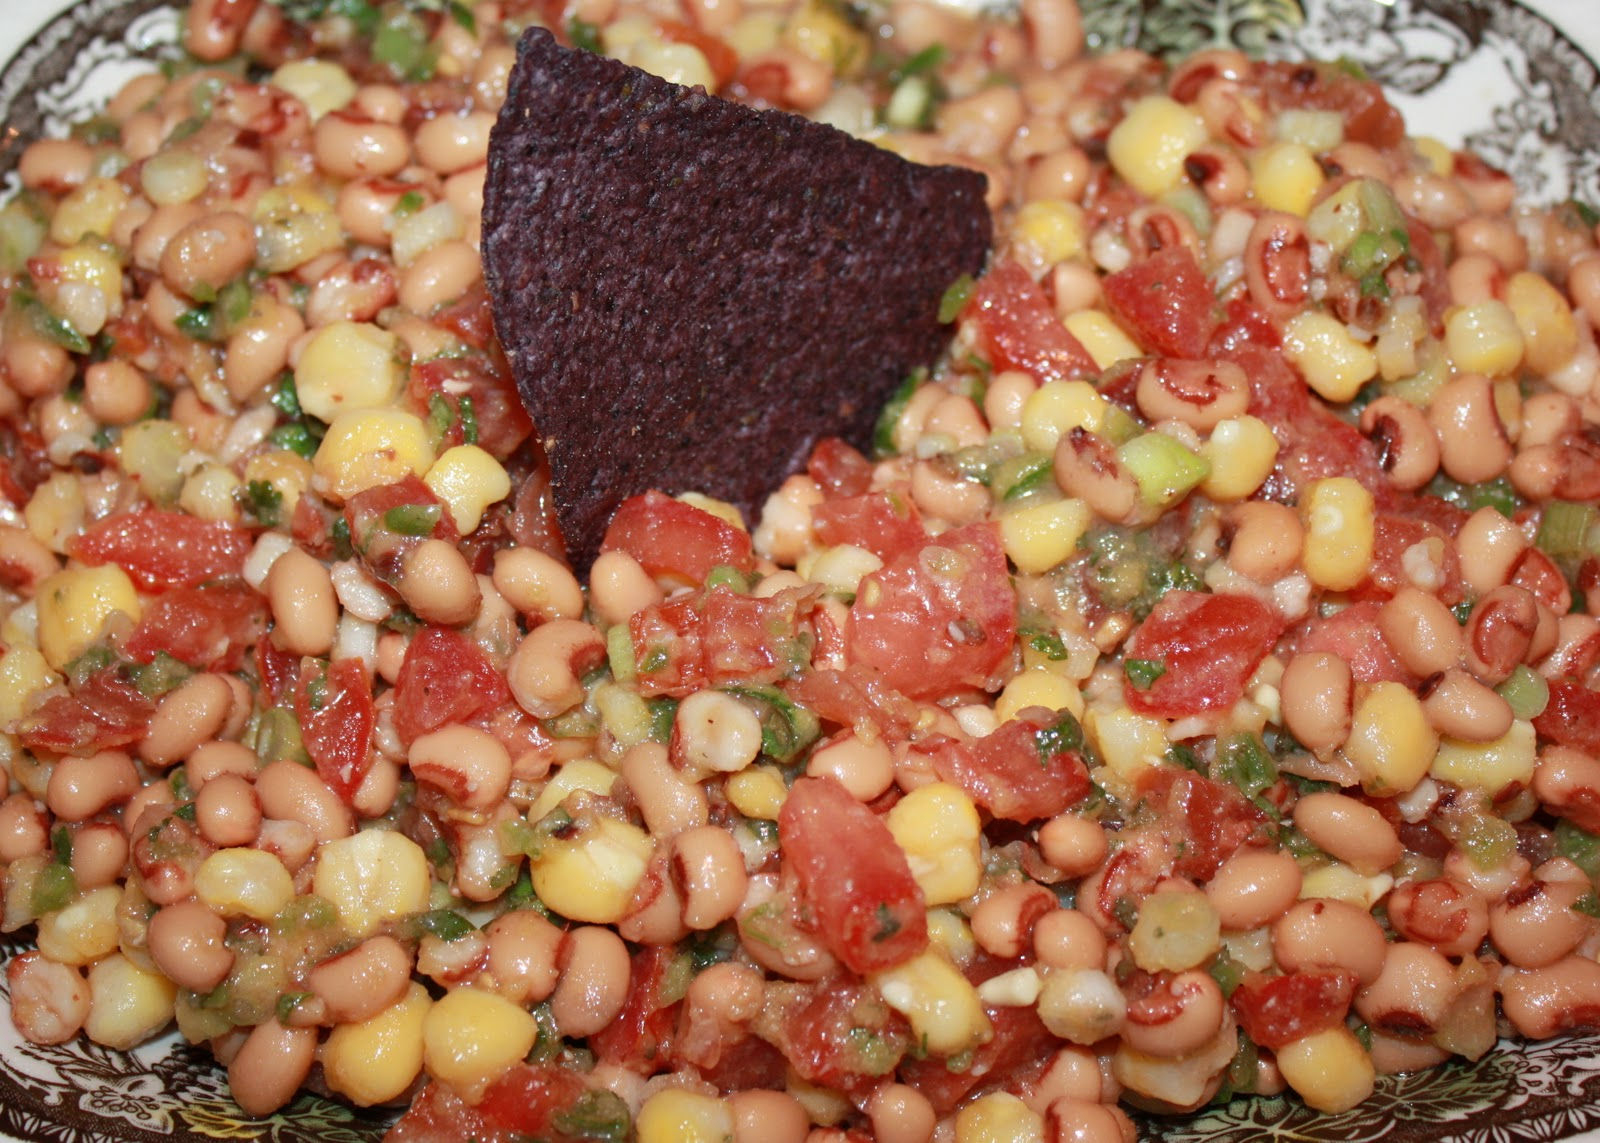 Texas Caviar (Black-Eyed Peas)